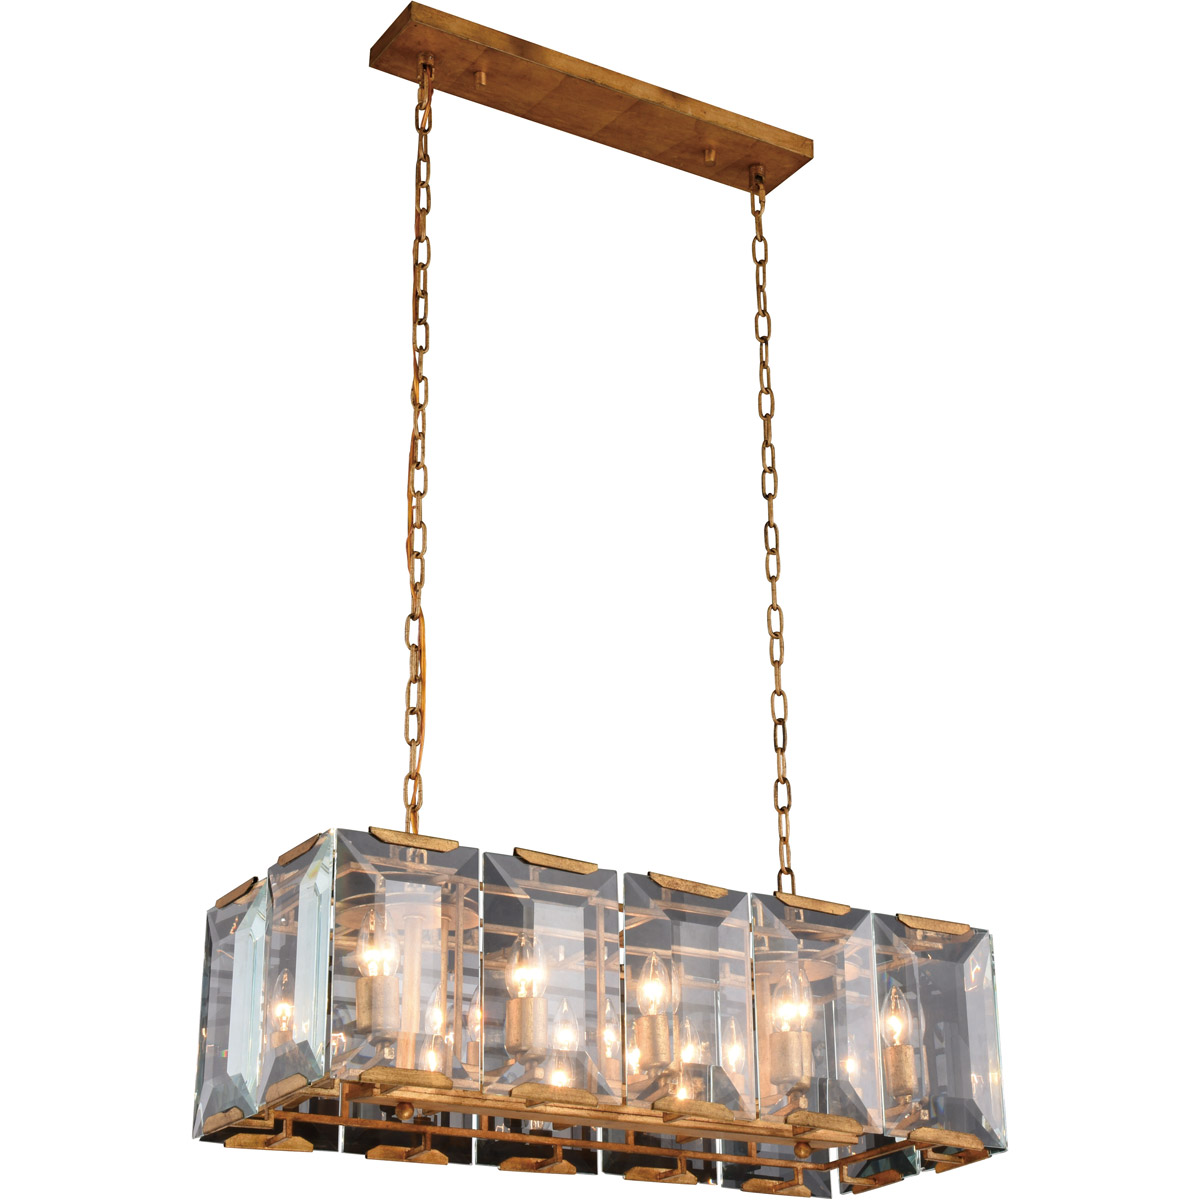 Details about 10 light 34 golden iron chandelier kitchen dining room ceiling lighting fixture